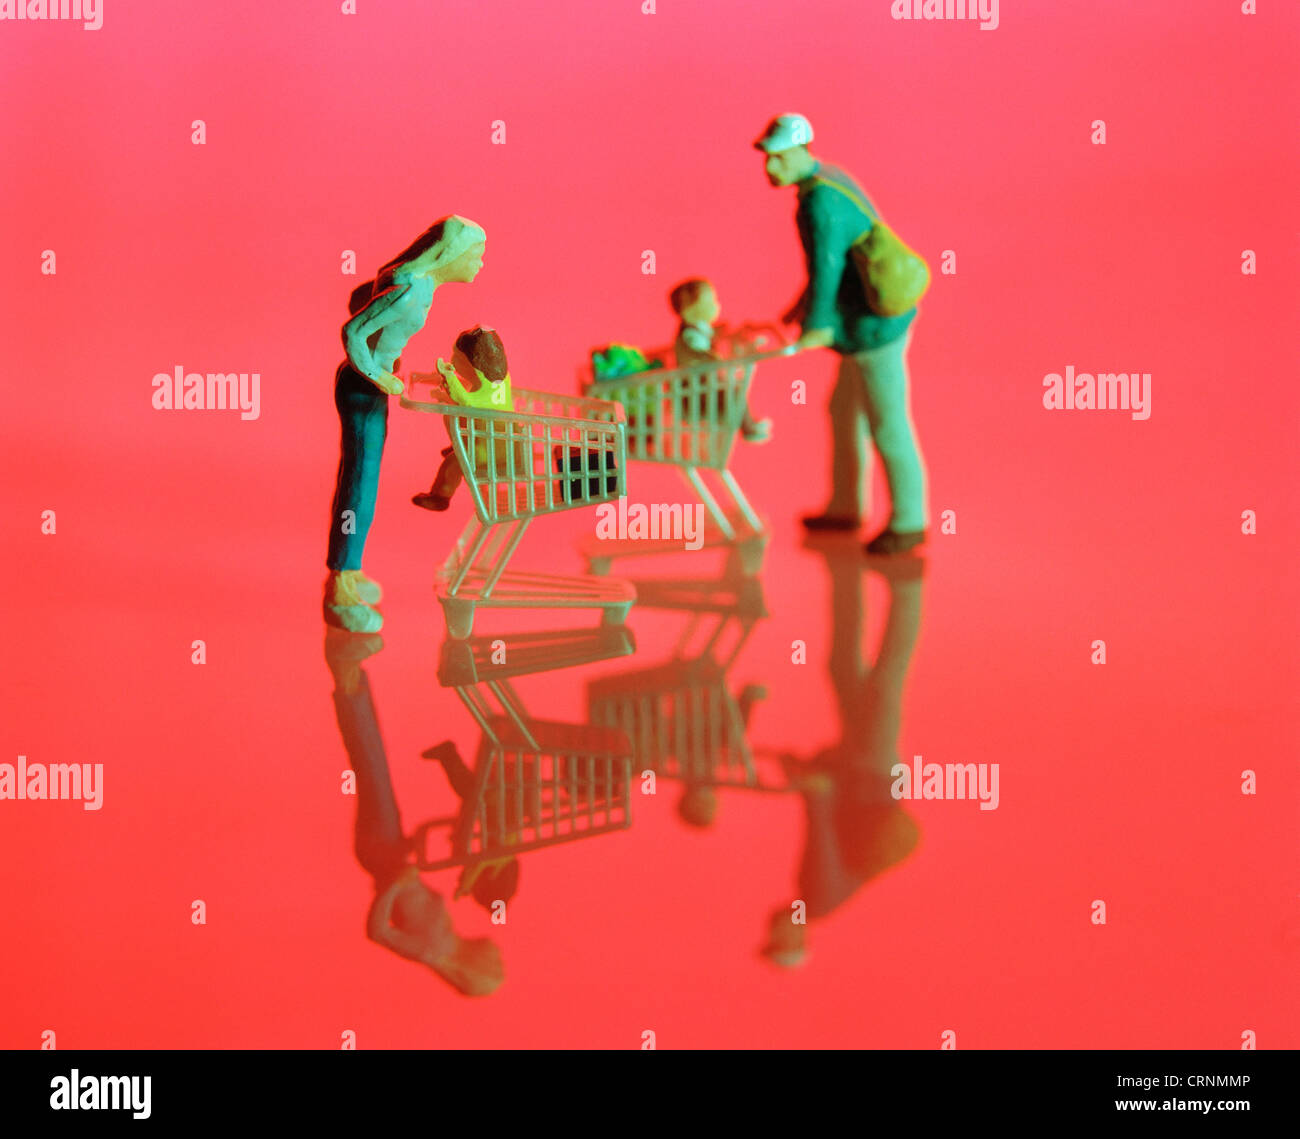 Miniature Figures with cart before red Flaeche - Stock Image